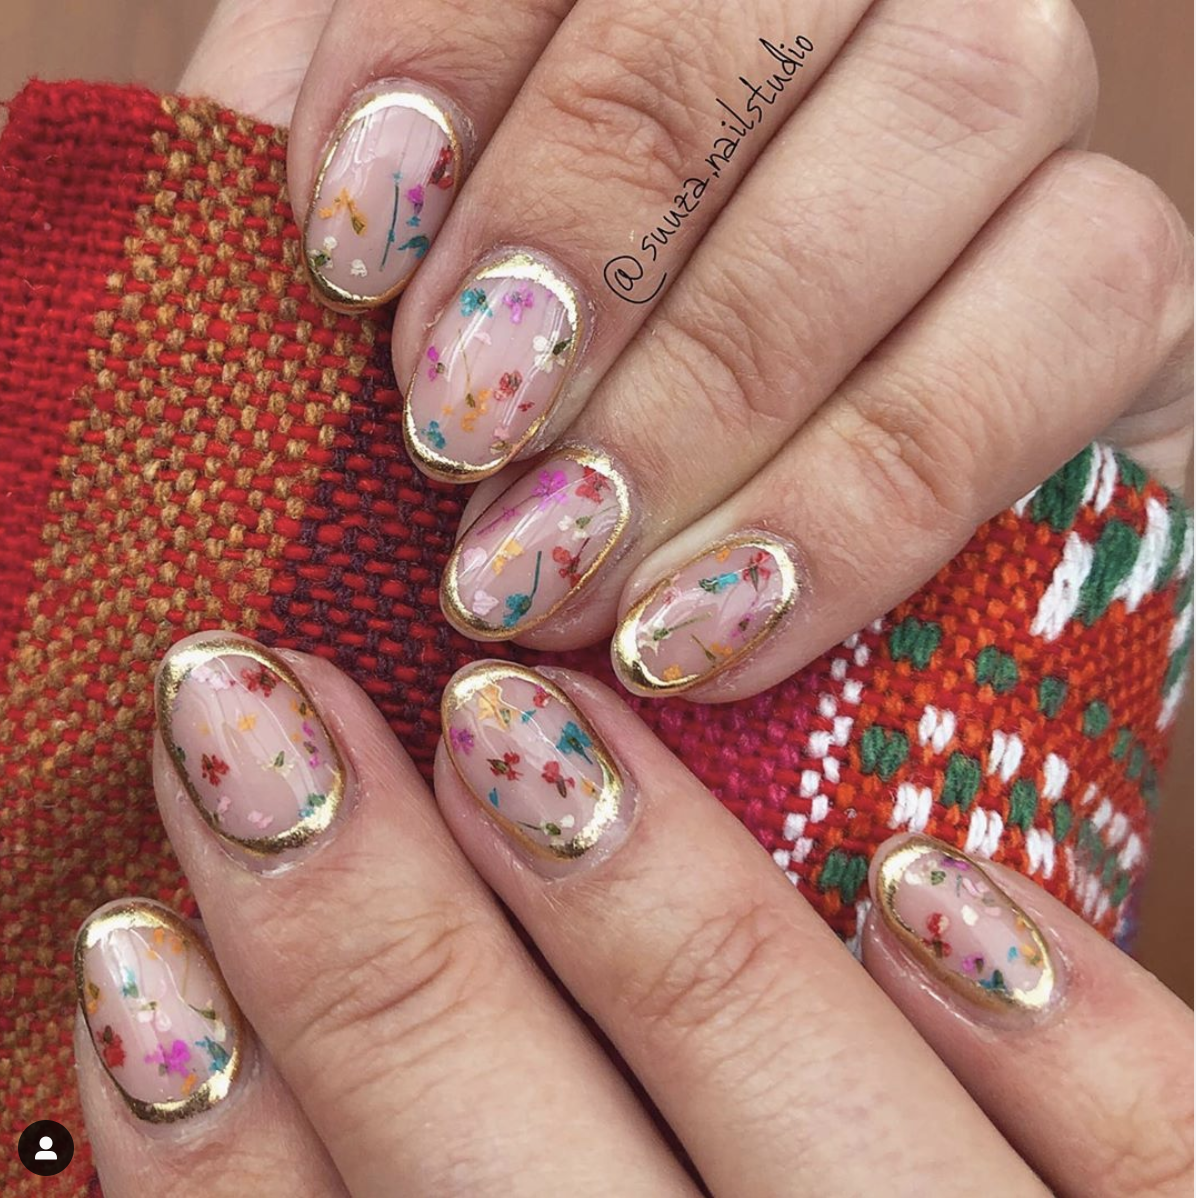 Nail art deluxe - dried flowers